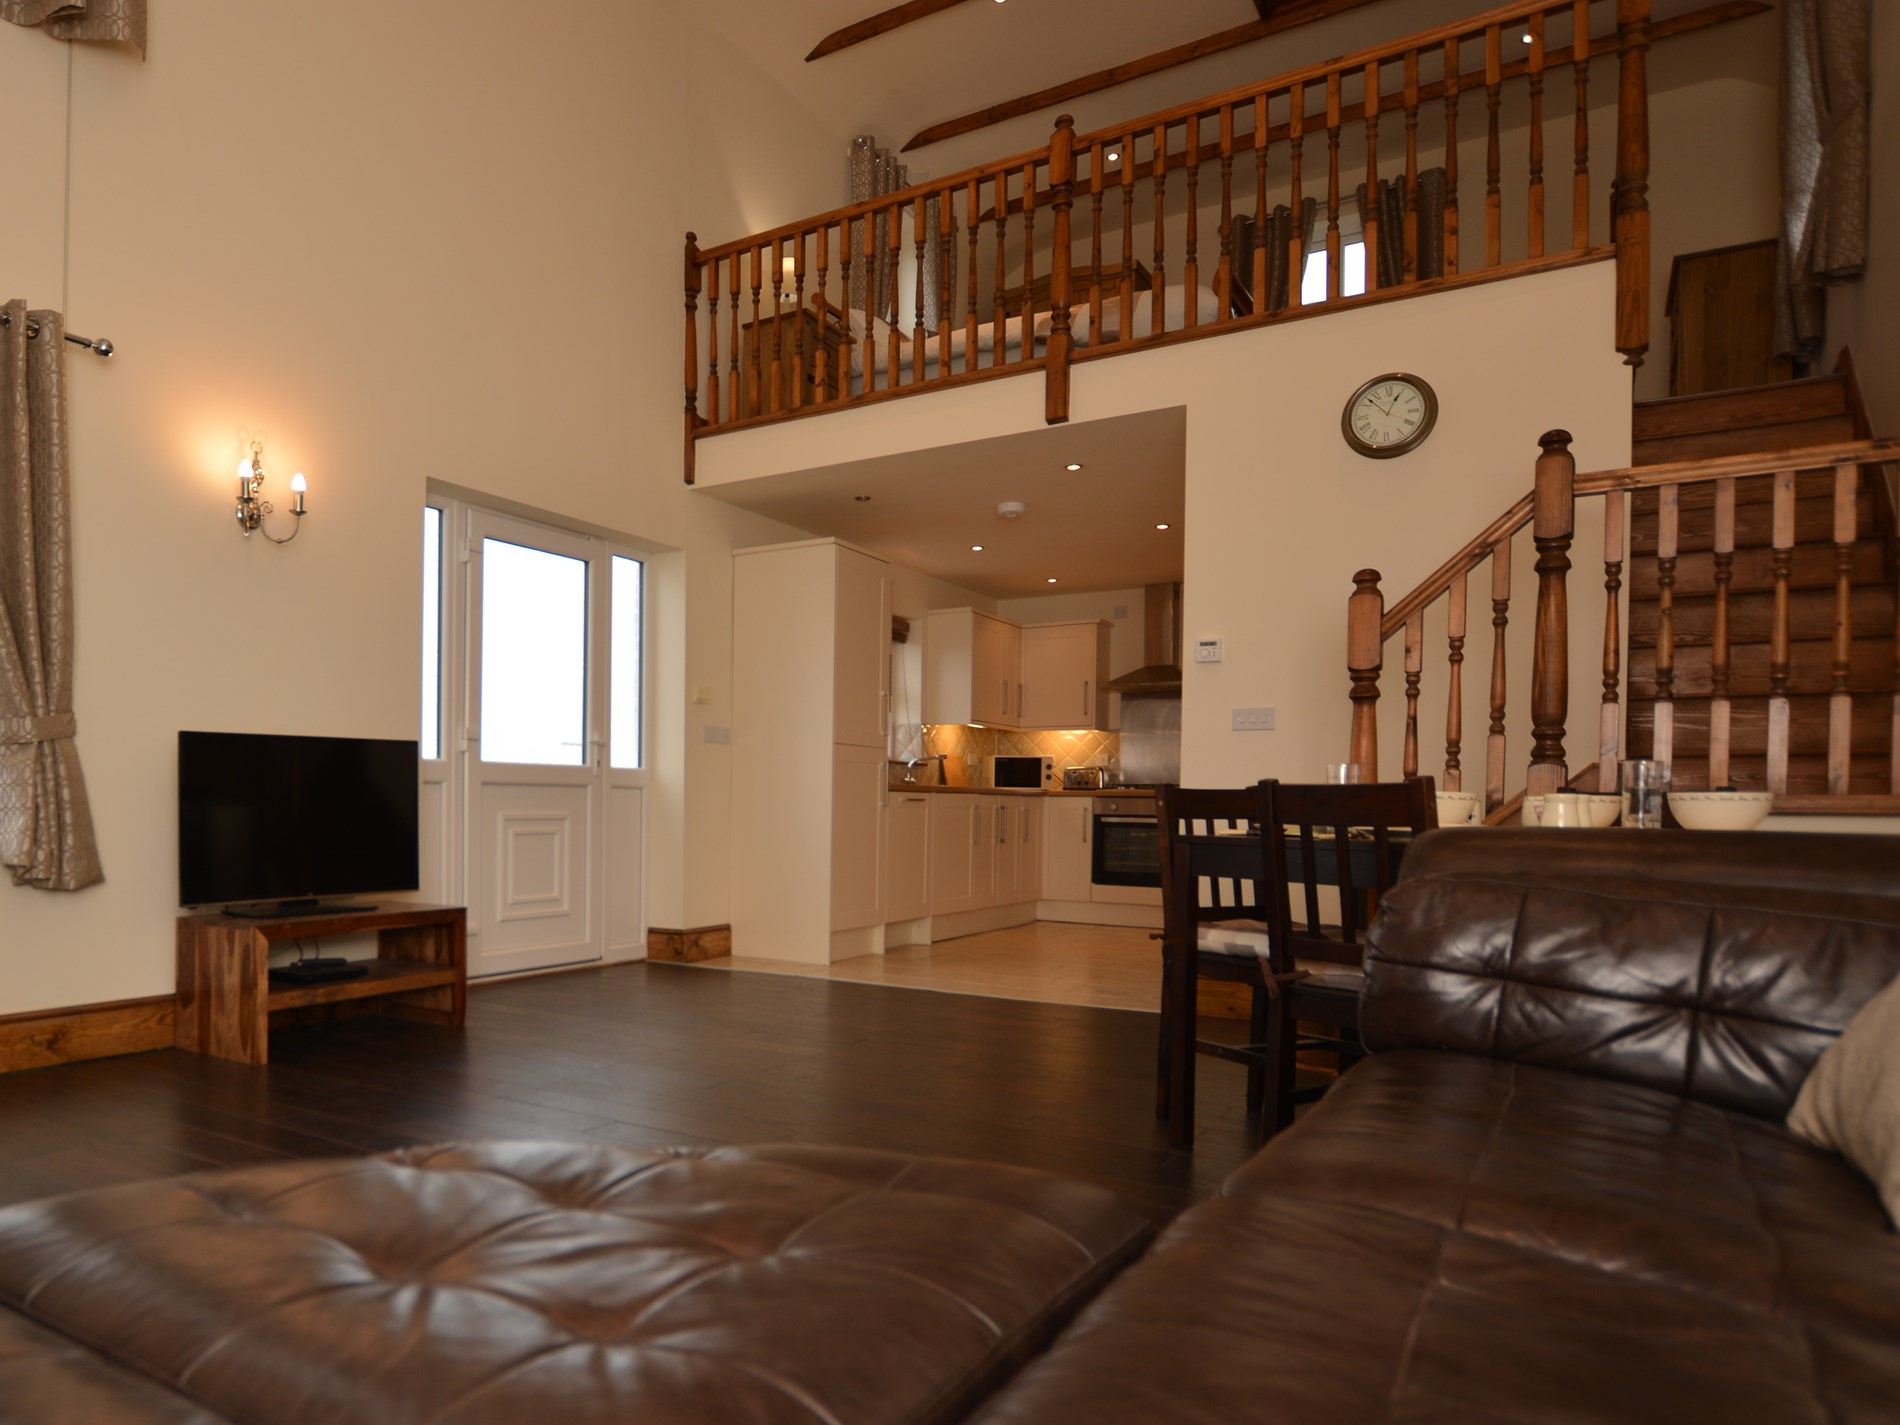 1 Bedroom Cottage in Grimsby, East of England